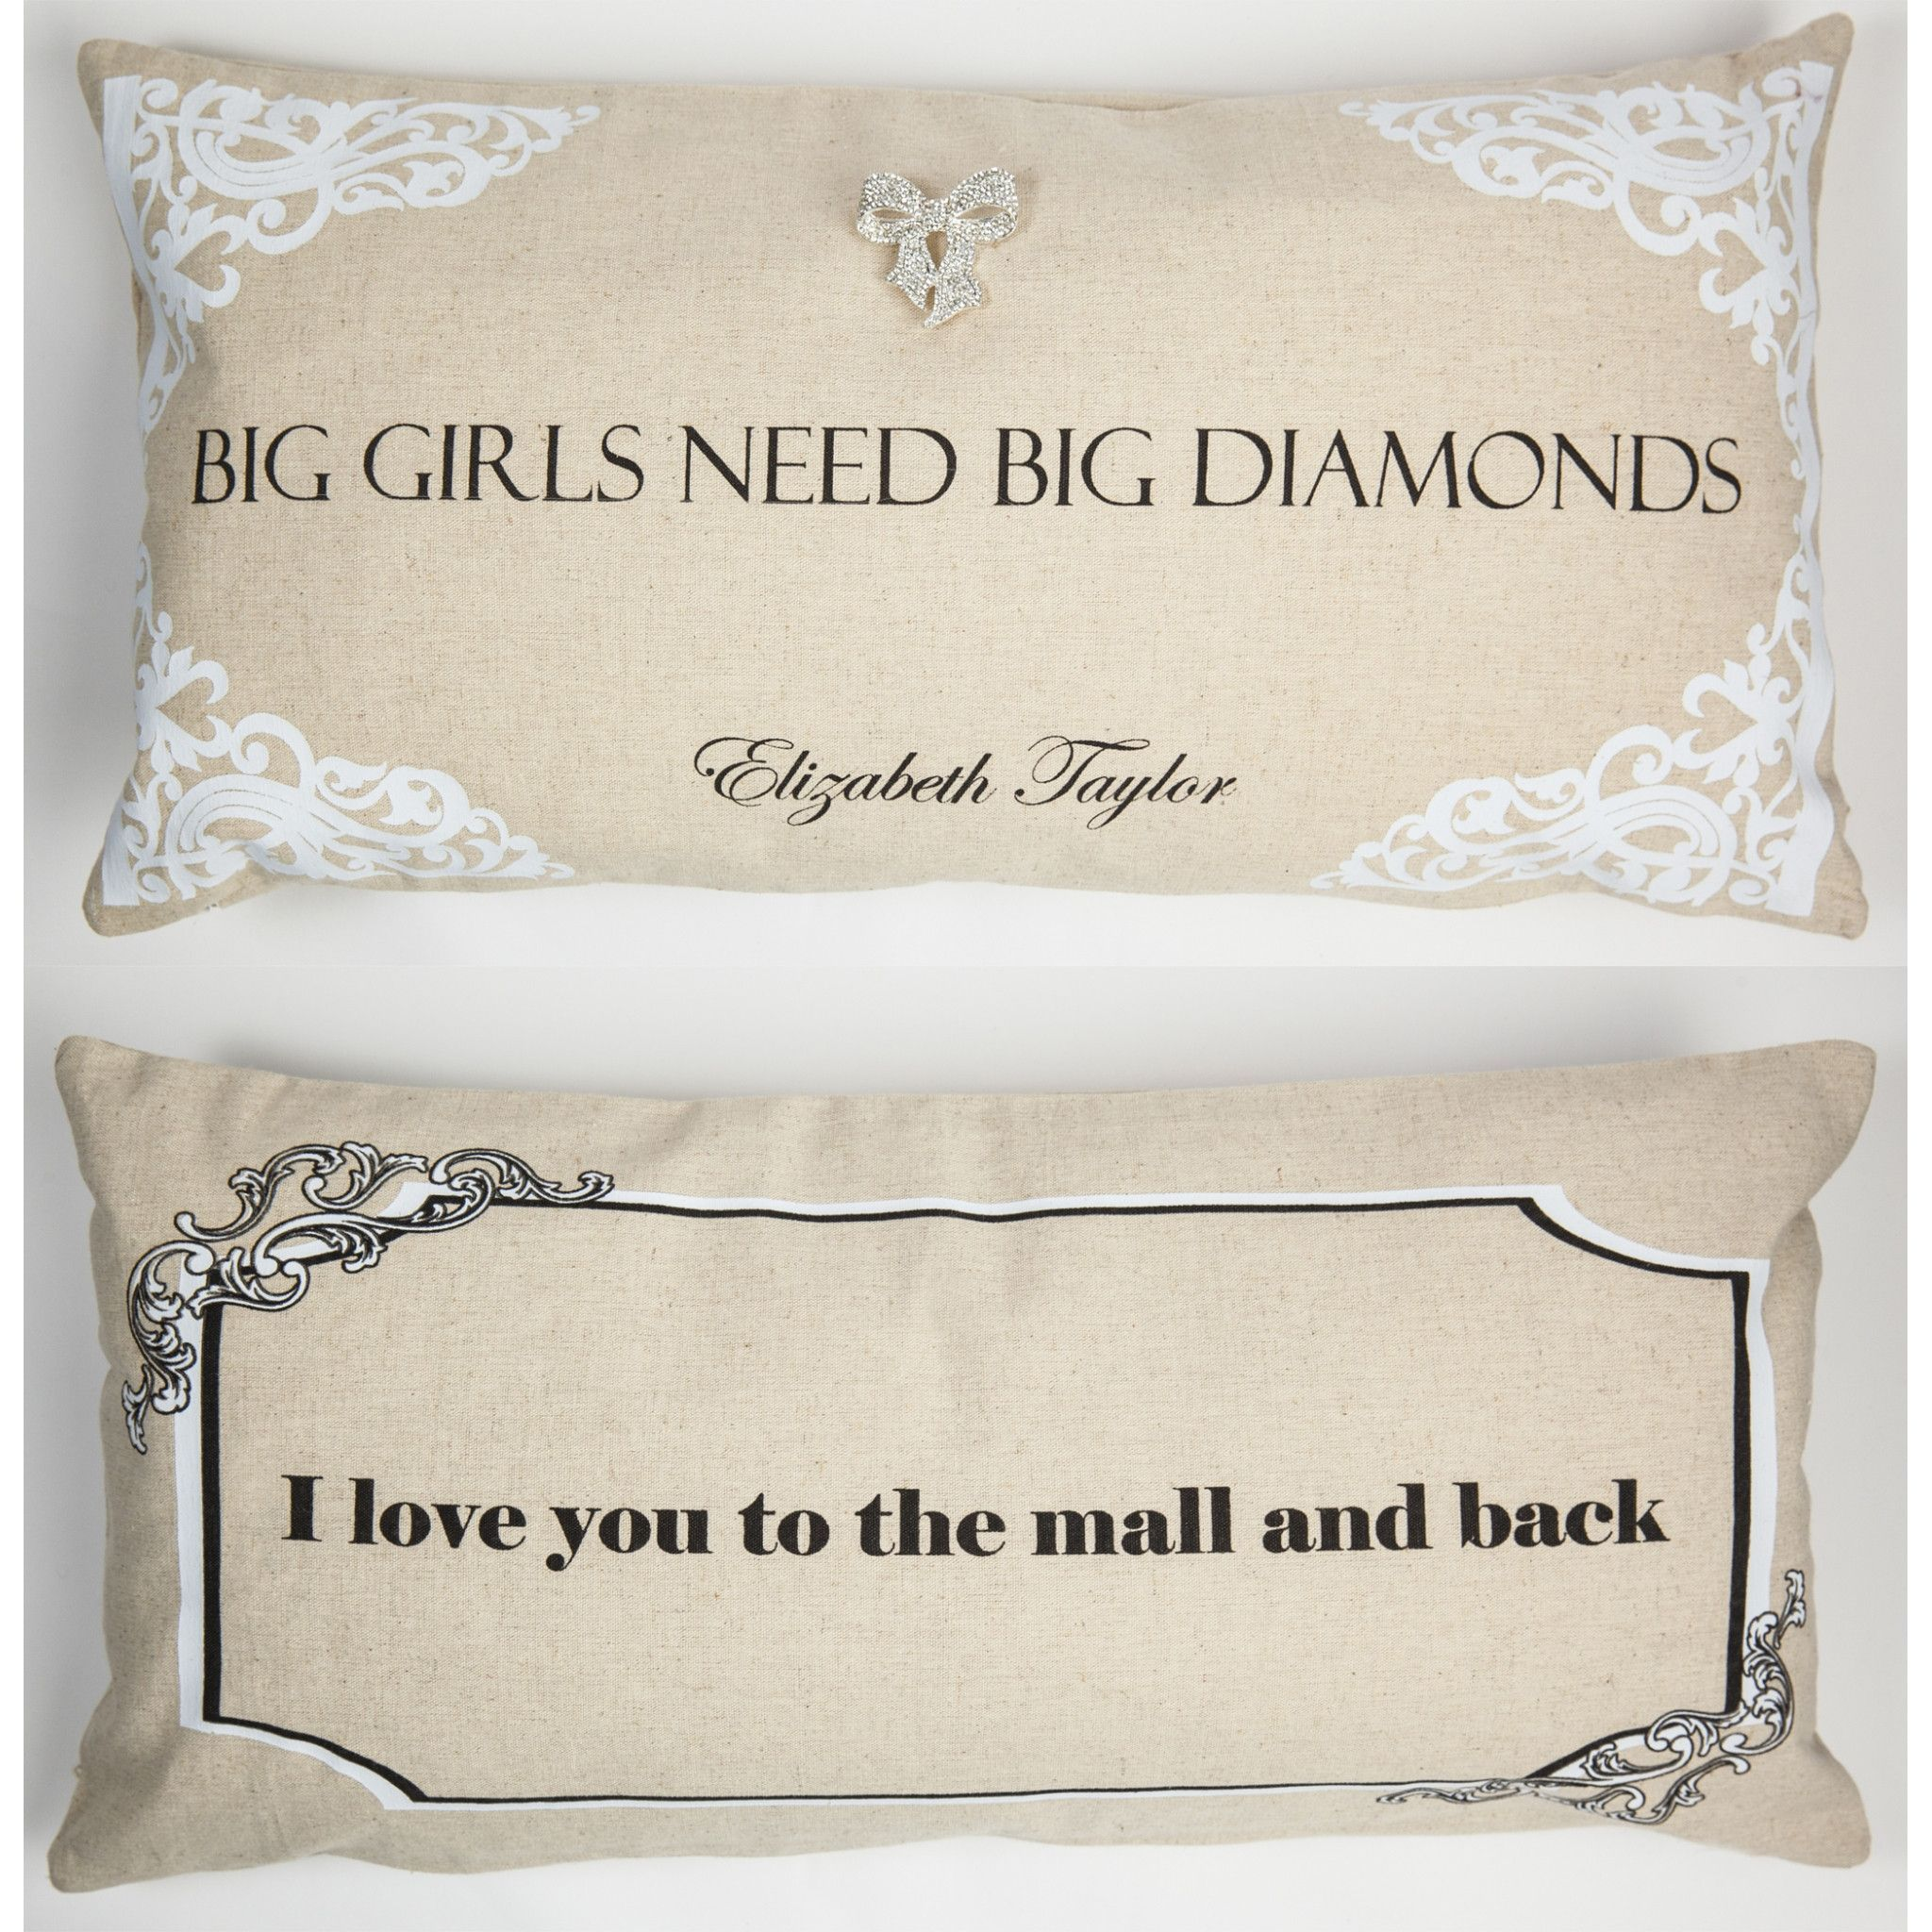 x ip mainstays walmart pillows pillow for teens decorative reversible com mermaid sequin